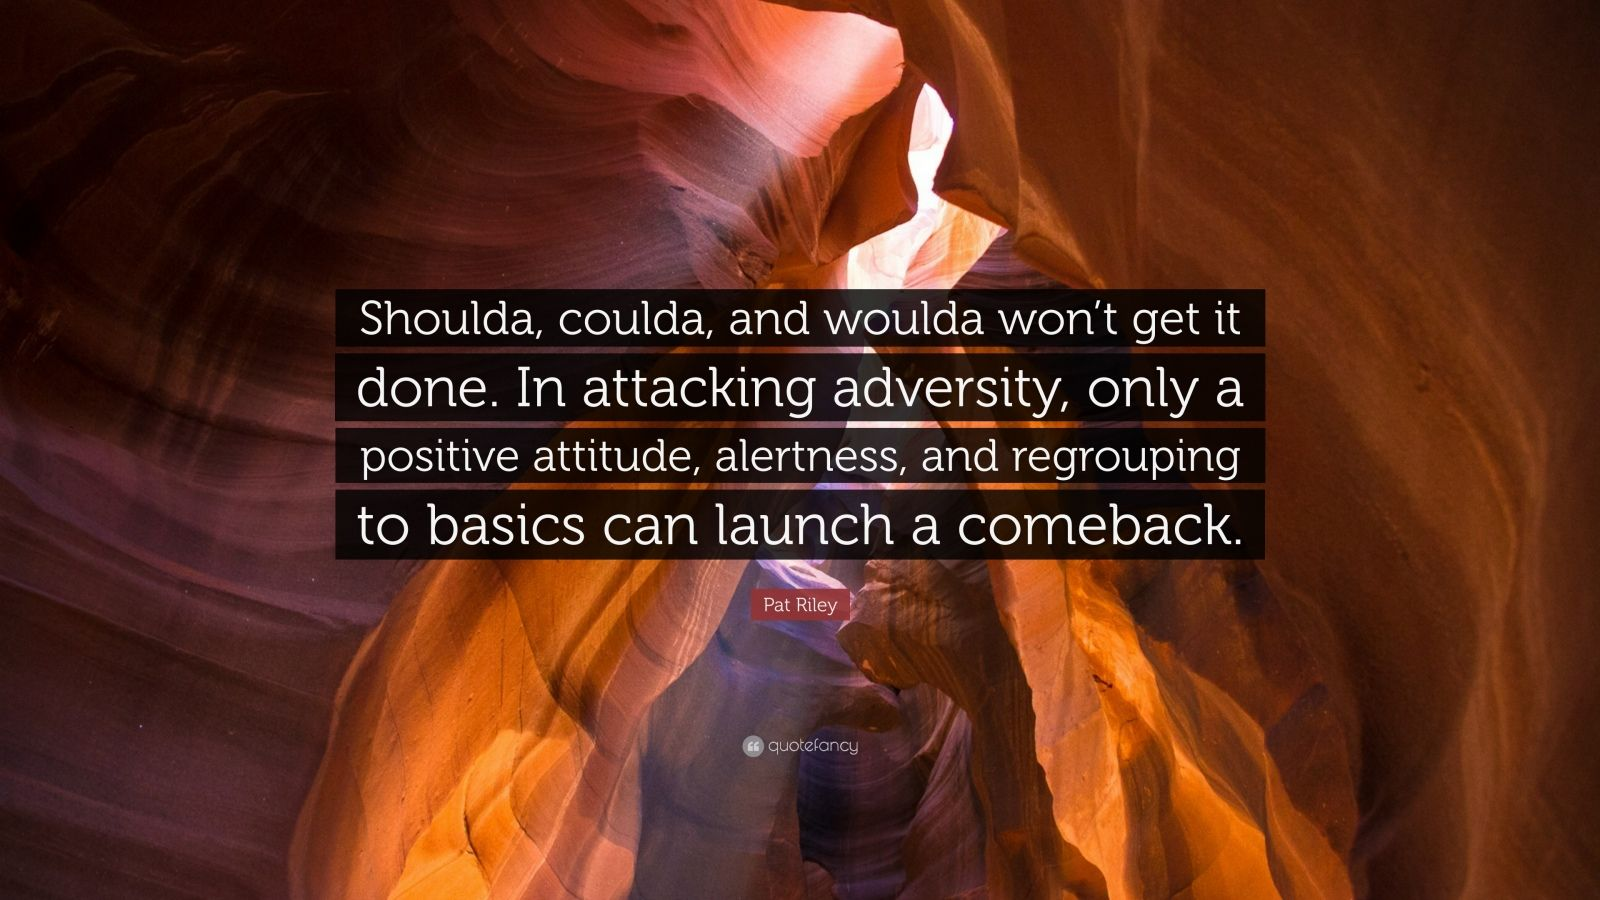 """Pat Riley Quote: """"Shoulda, coulda, and woulda won't get it done. In attacking adversity, only a positive attitude, alertness, and regrouping to basics can launch a comeback."""""""